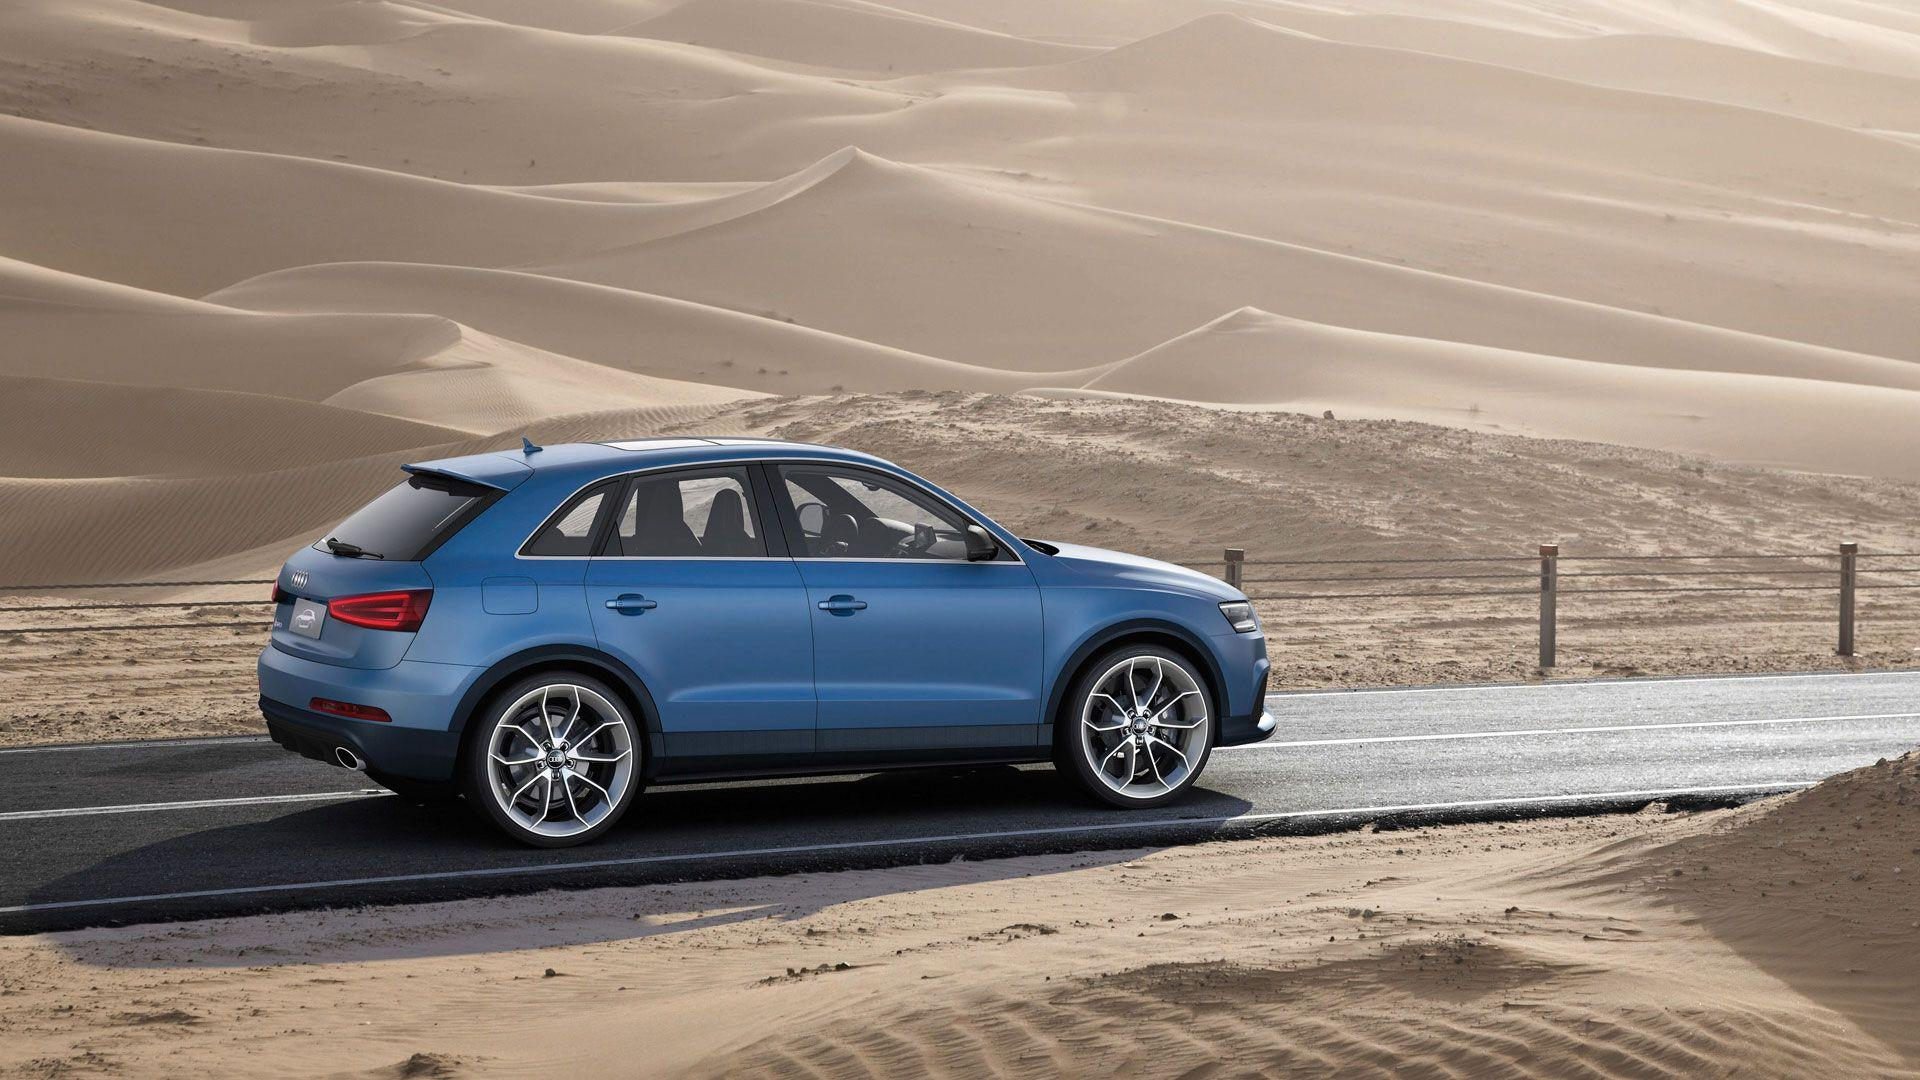 Audi Q3 Wallpapers High Quality Resolution